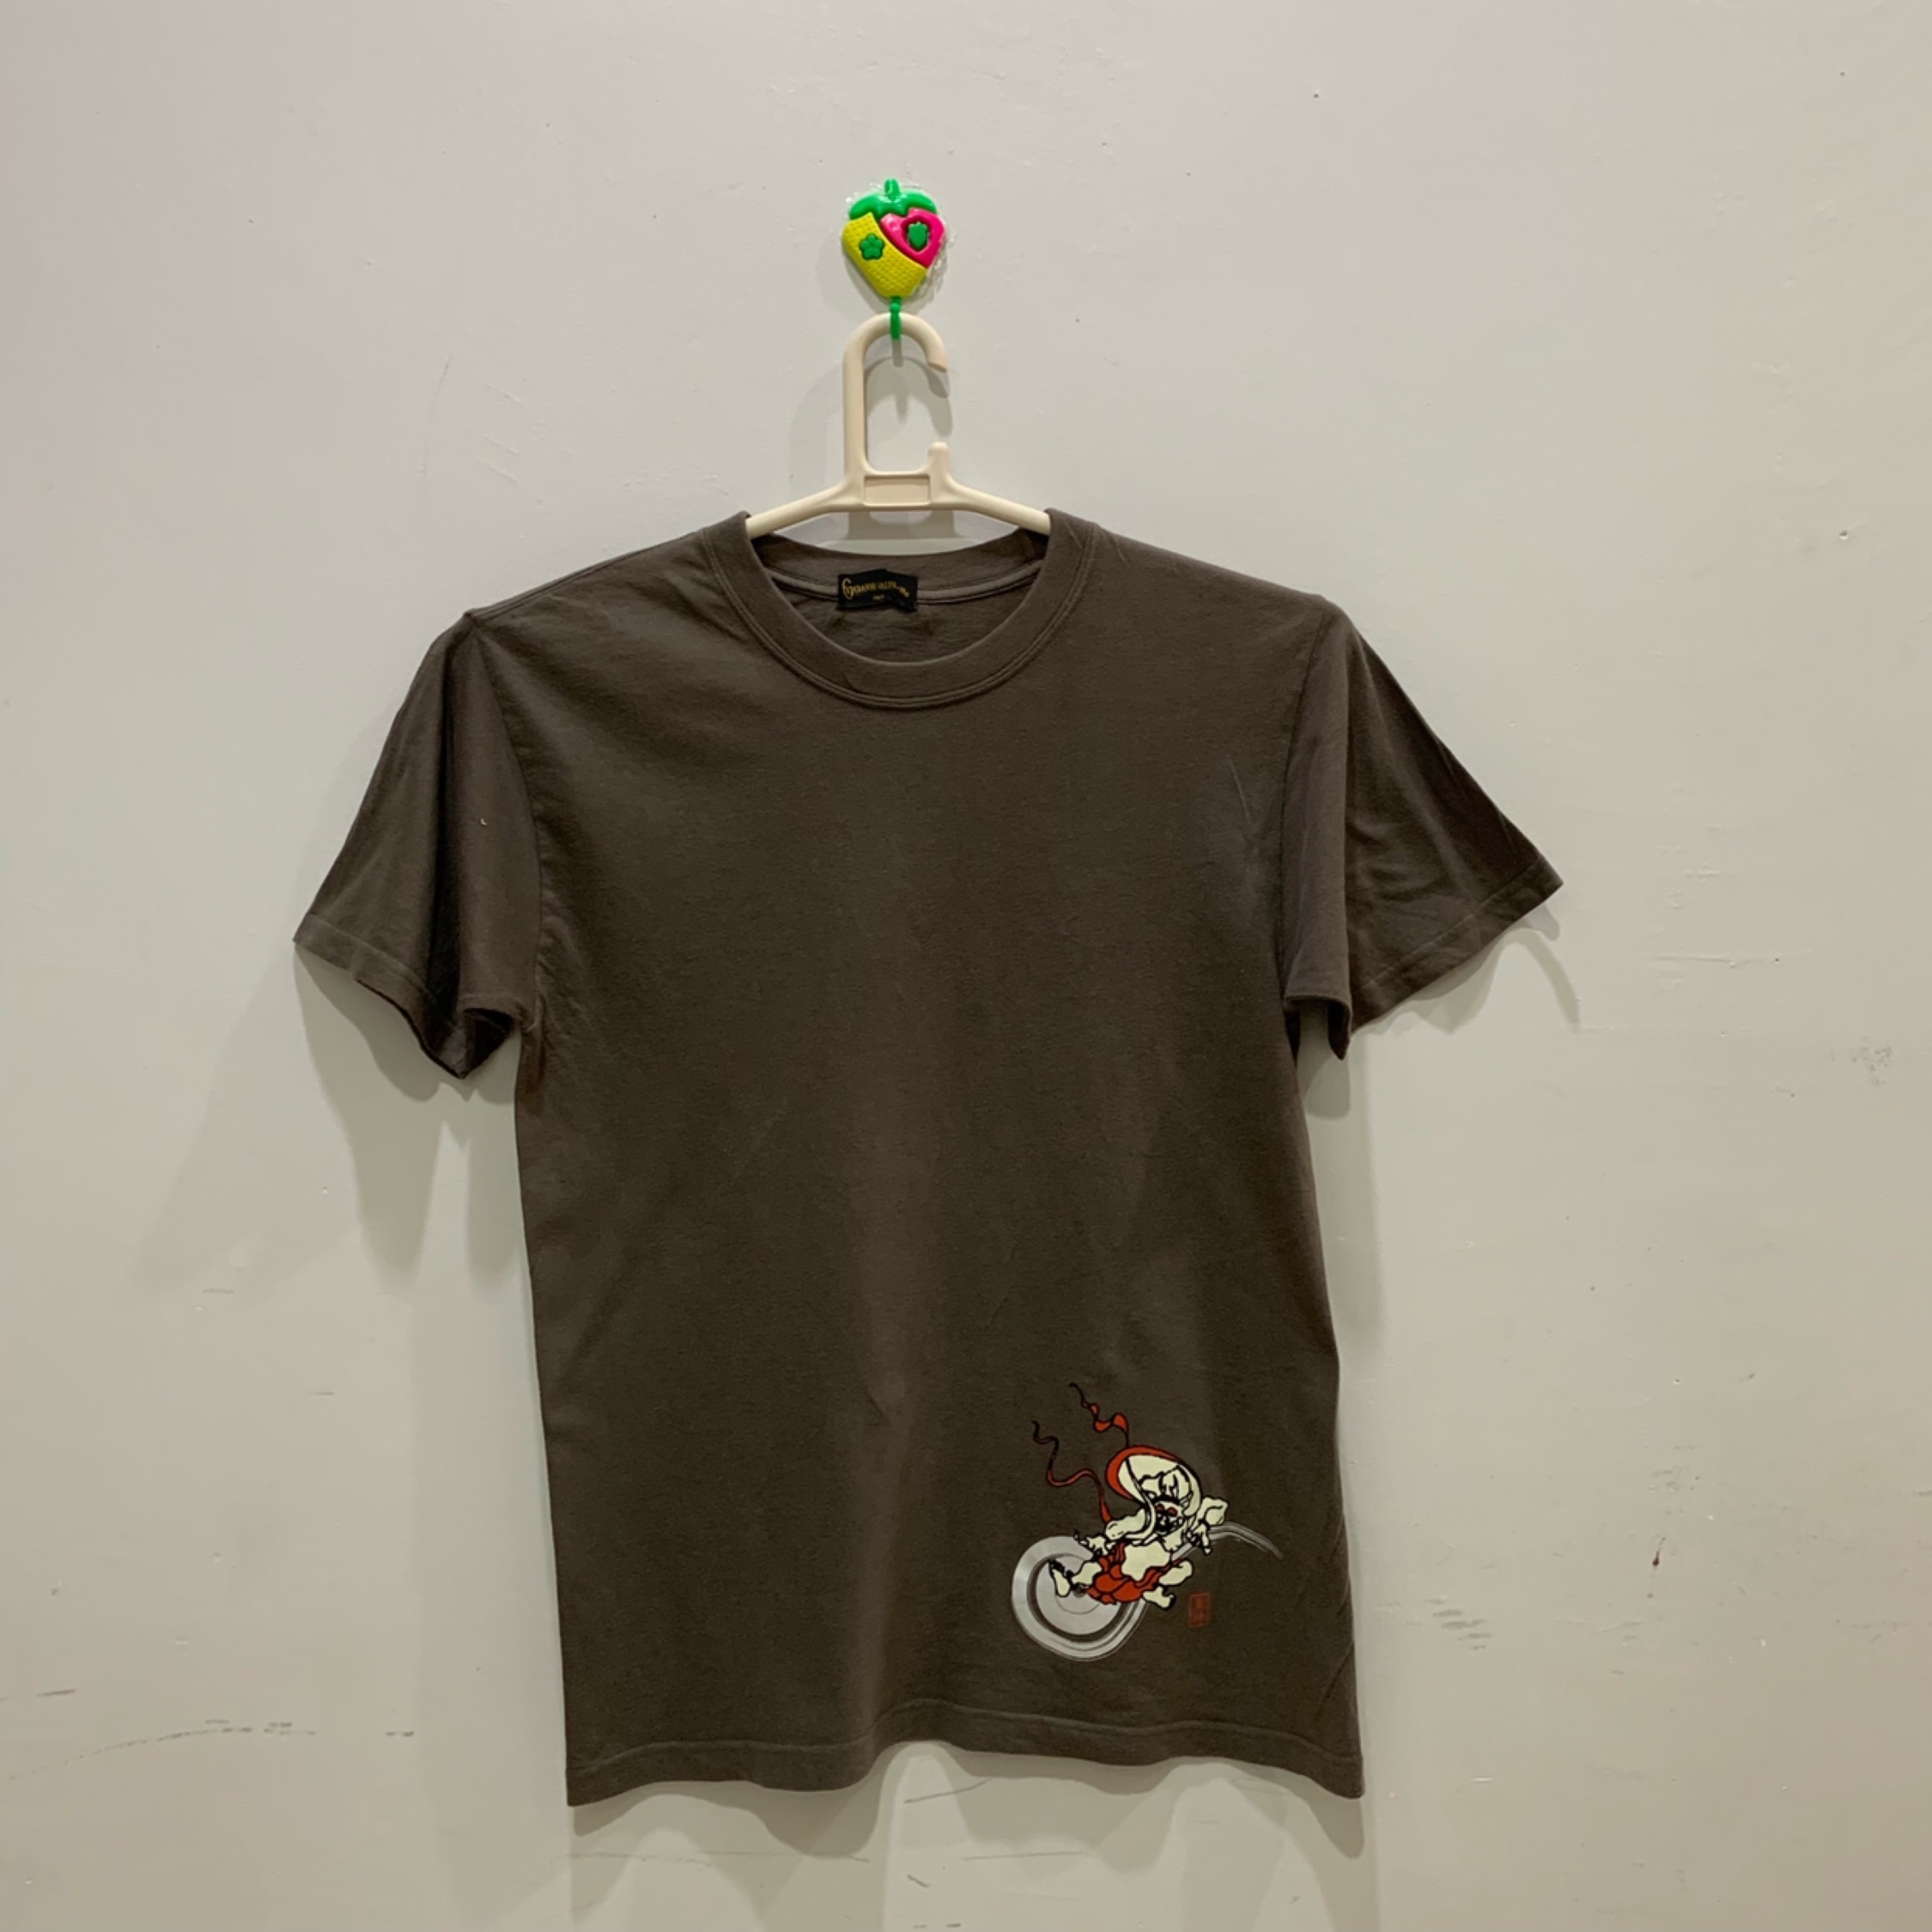 Gianni Valentino Italy Tee Size M Fits S